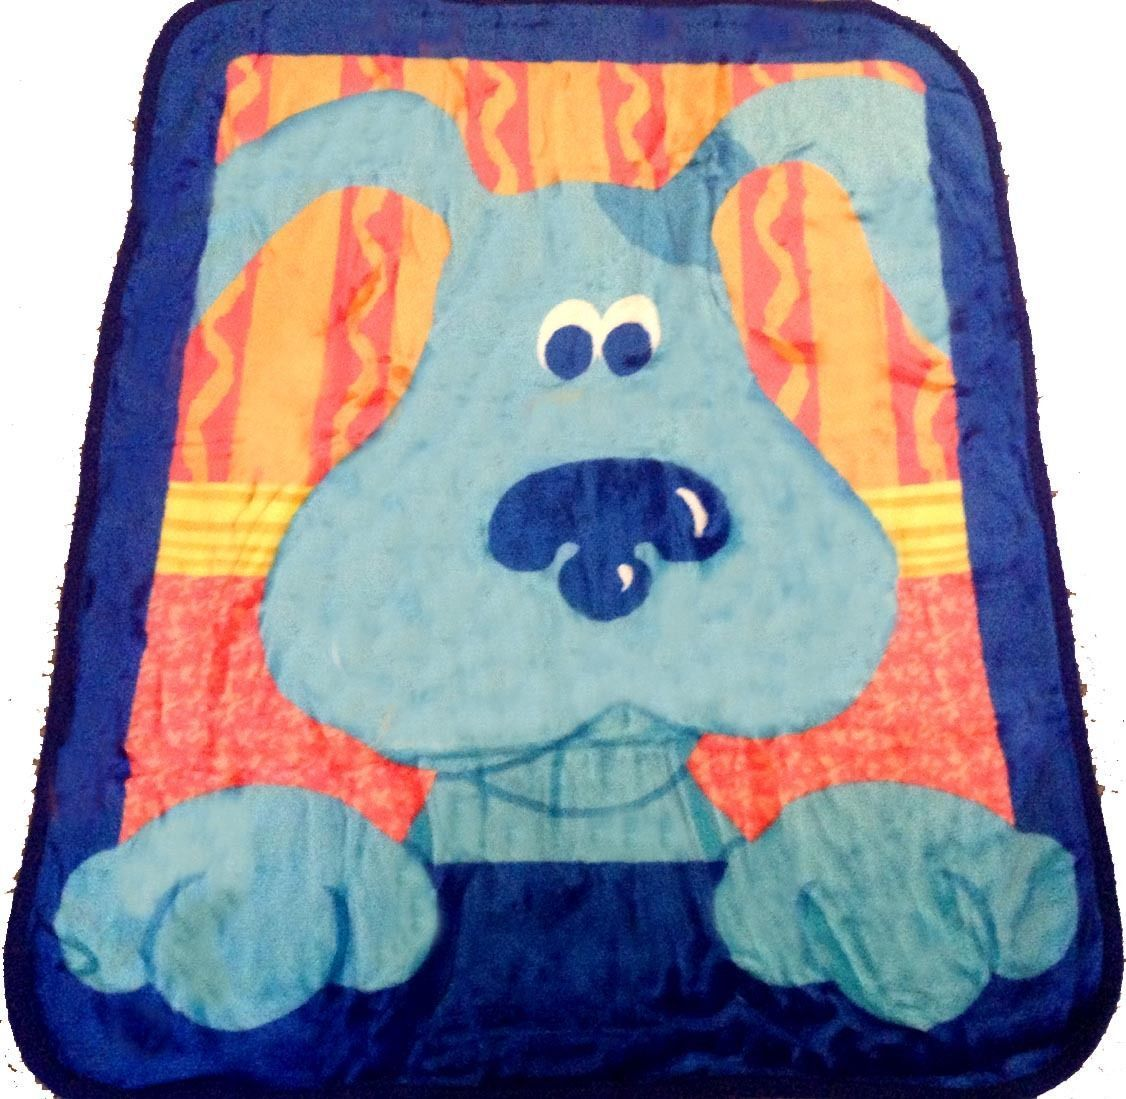 awesome Blues Clues blanket bedding 50x60 PLUSH FREE SHIPPING ...